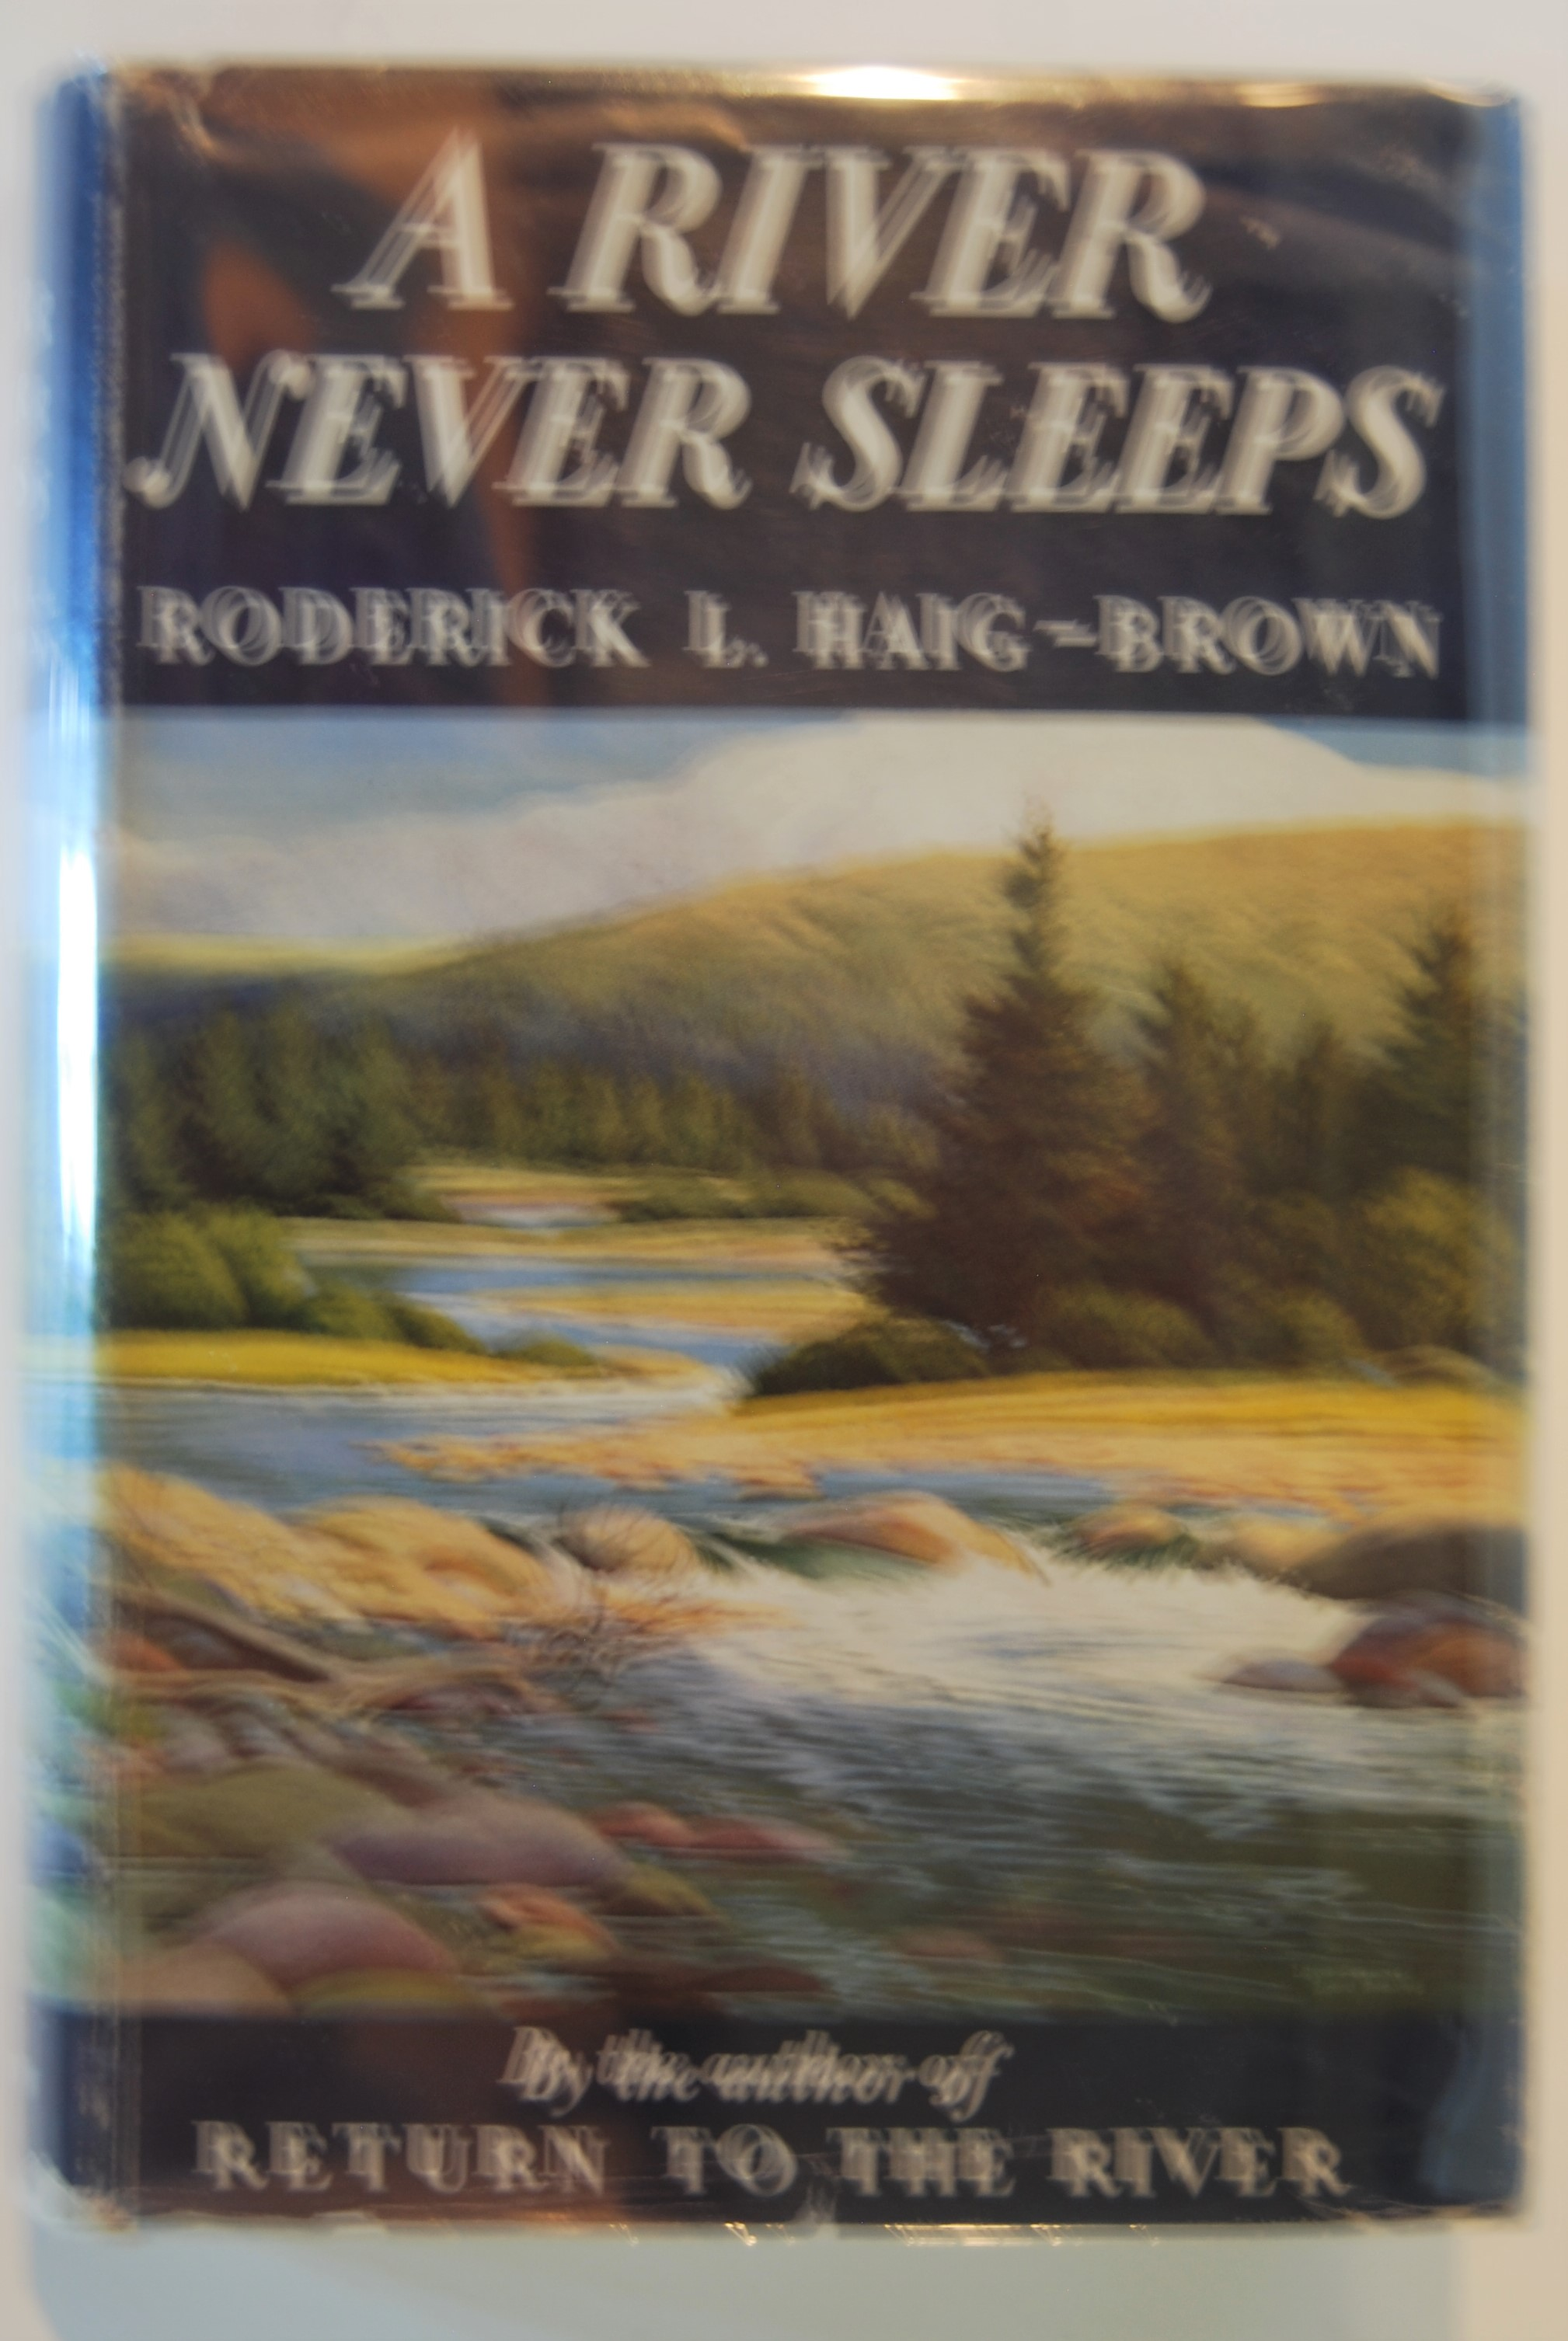 Image for A RIVER NEVER SLEEPS.  8vo Illus. by Louis Darling.  NY: William Morrow & Co. vii + 352 p.  1946 1st Ed.